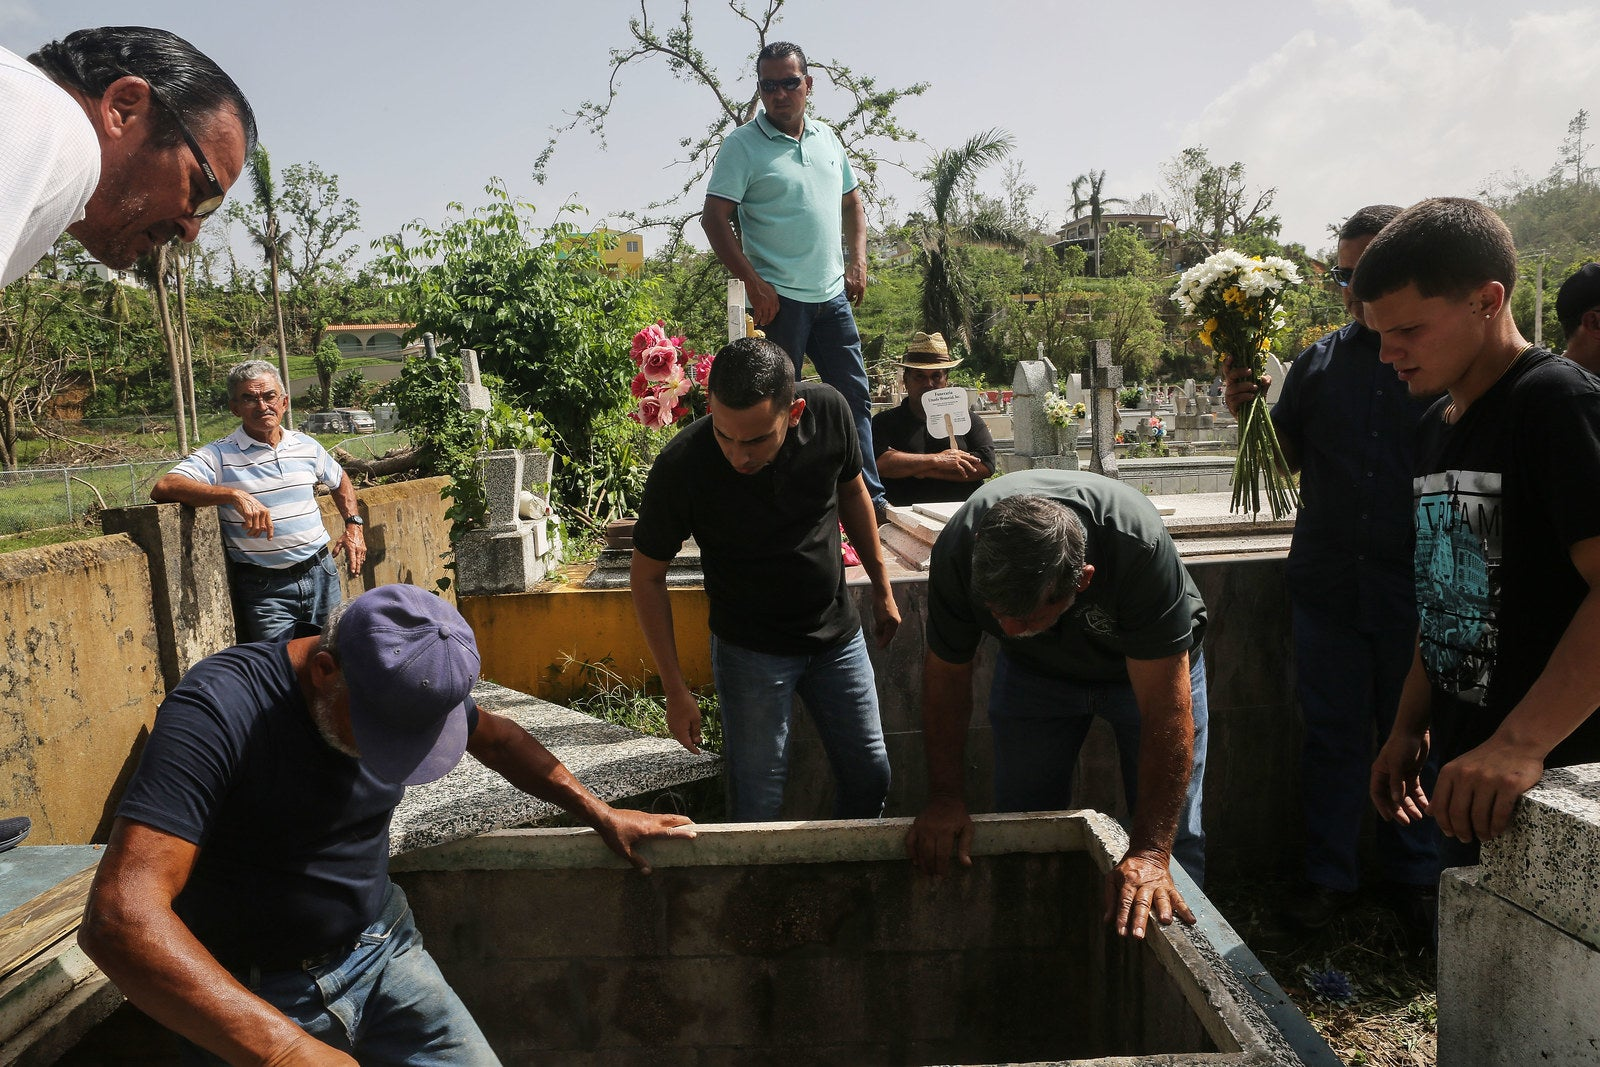 Mourners and cemetery workers gather at the gravesite on Oct. 19 in Utuado, Puerto Rico.